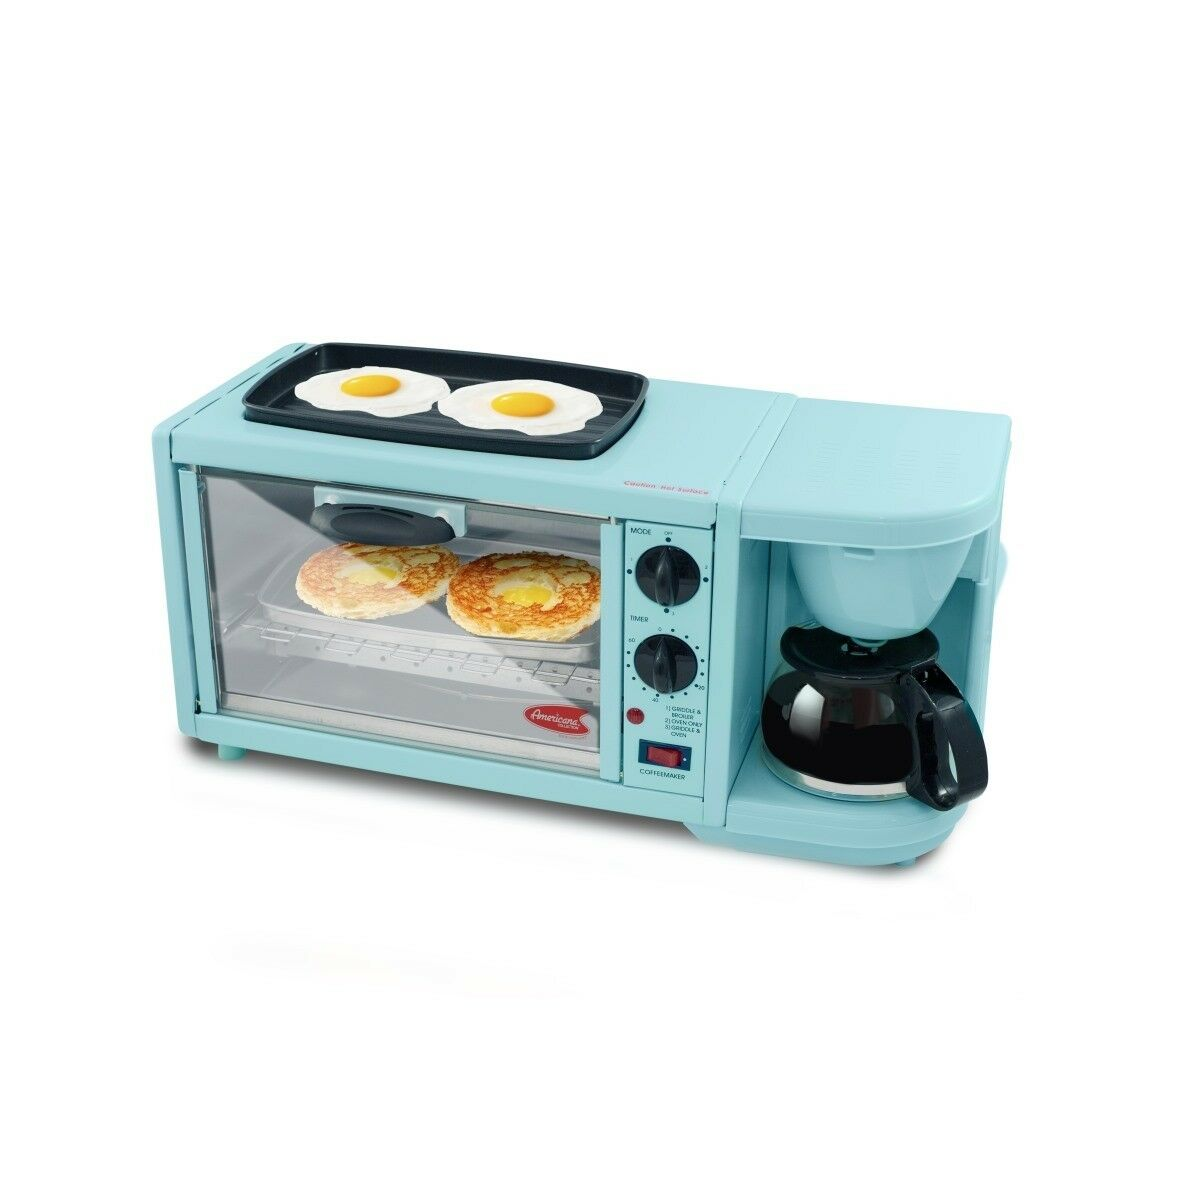 EMG EBK300BL Maximatic 3 In1 Breakfast Toaster Oven Griddle